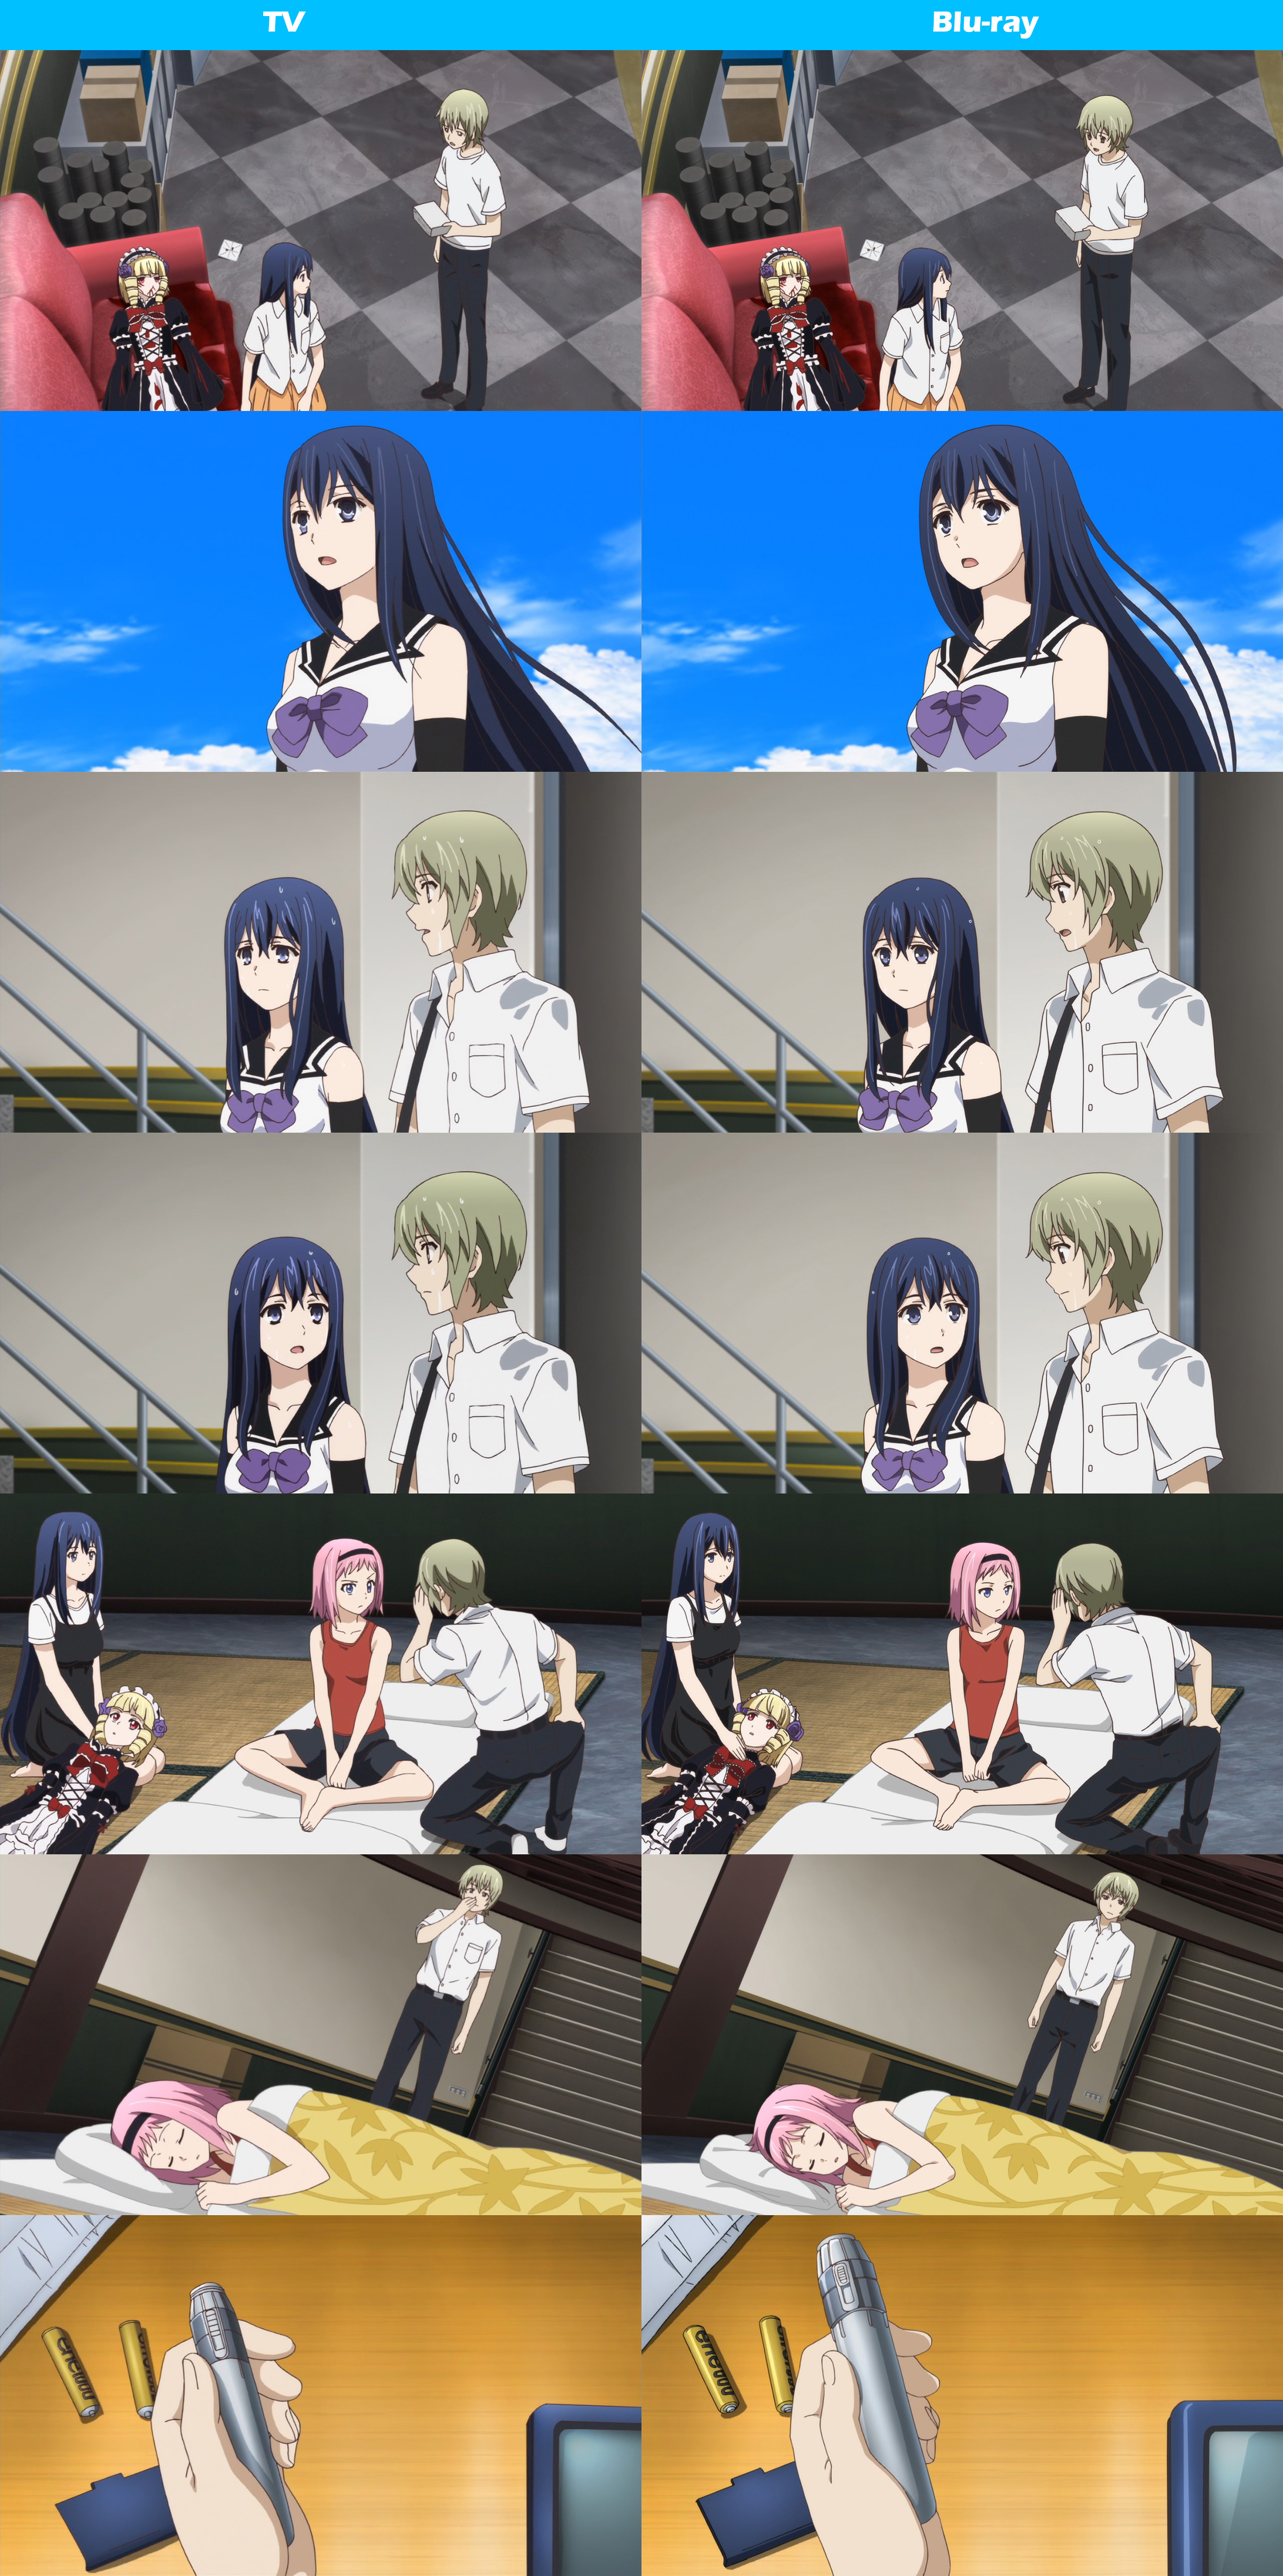 Gokukoku-no-Brynhildr-TV-and-Blu-ray-Comparisons-Quality-2